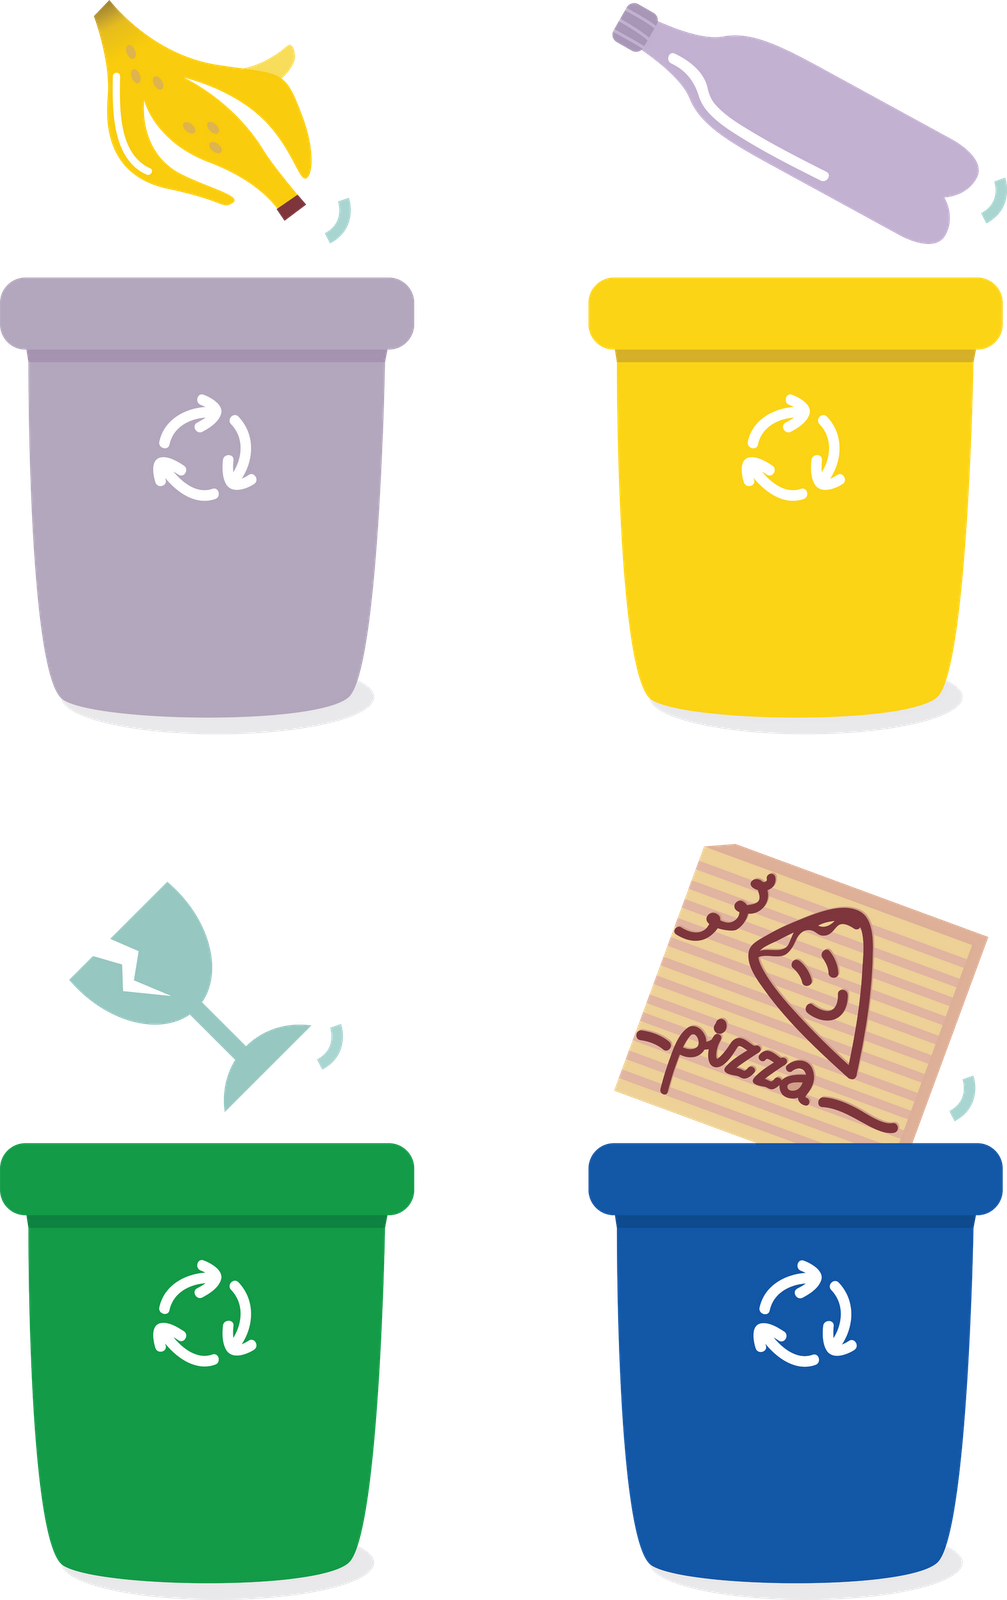 Bin Sorting Recycling Baskets Paper Rubbish Recycle PNG Image